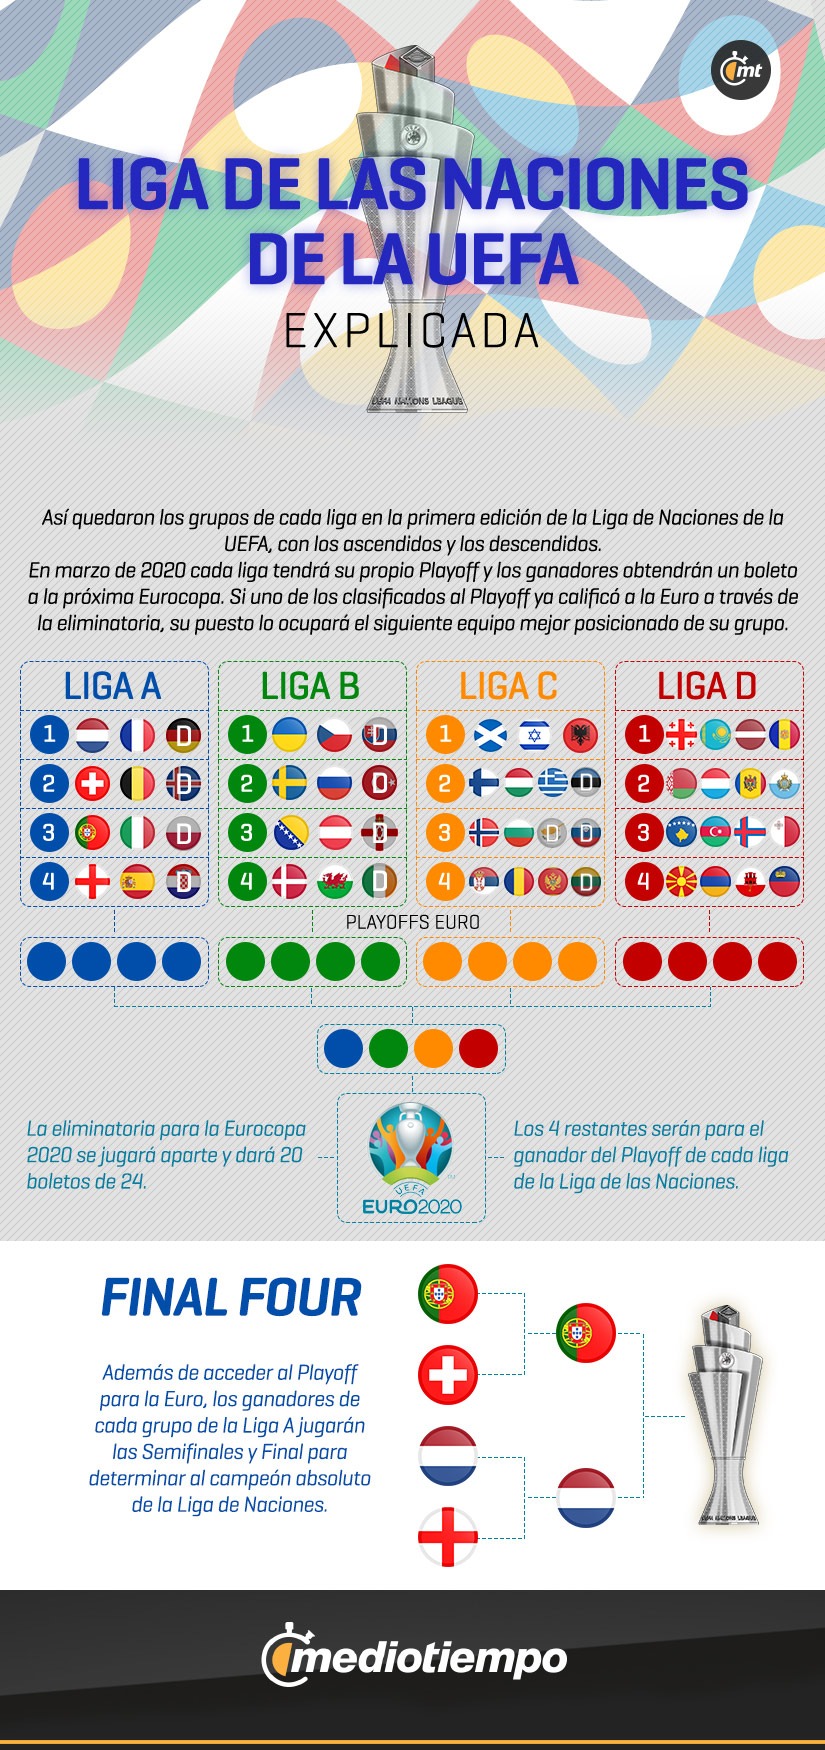 Calendario Uefa Nations League.Uefa Nations League Lo Que Debes Saber Sobre El Final Four Y